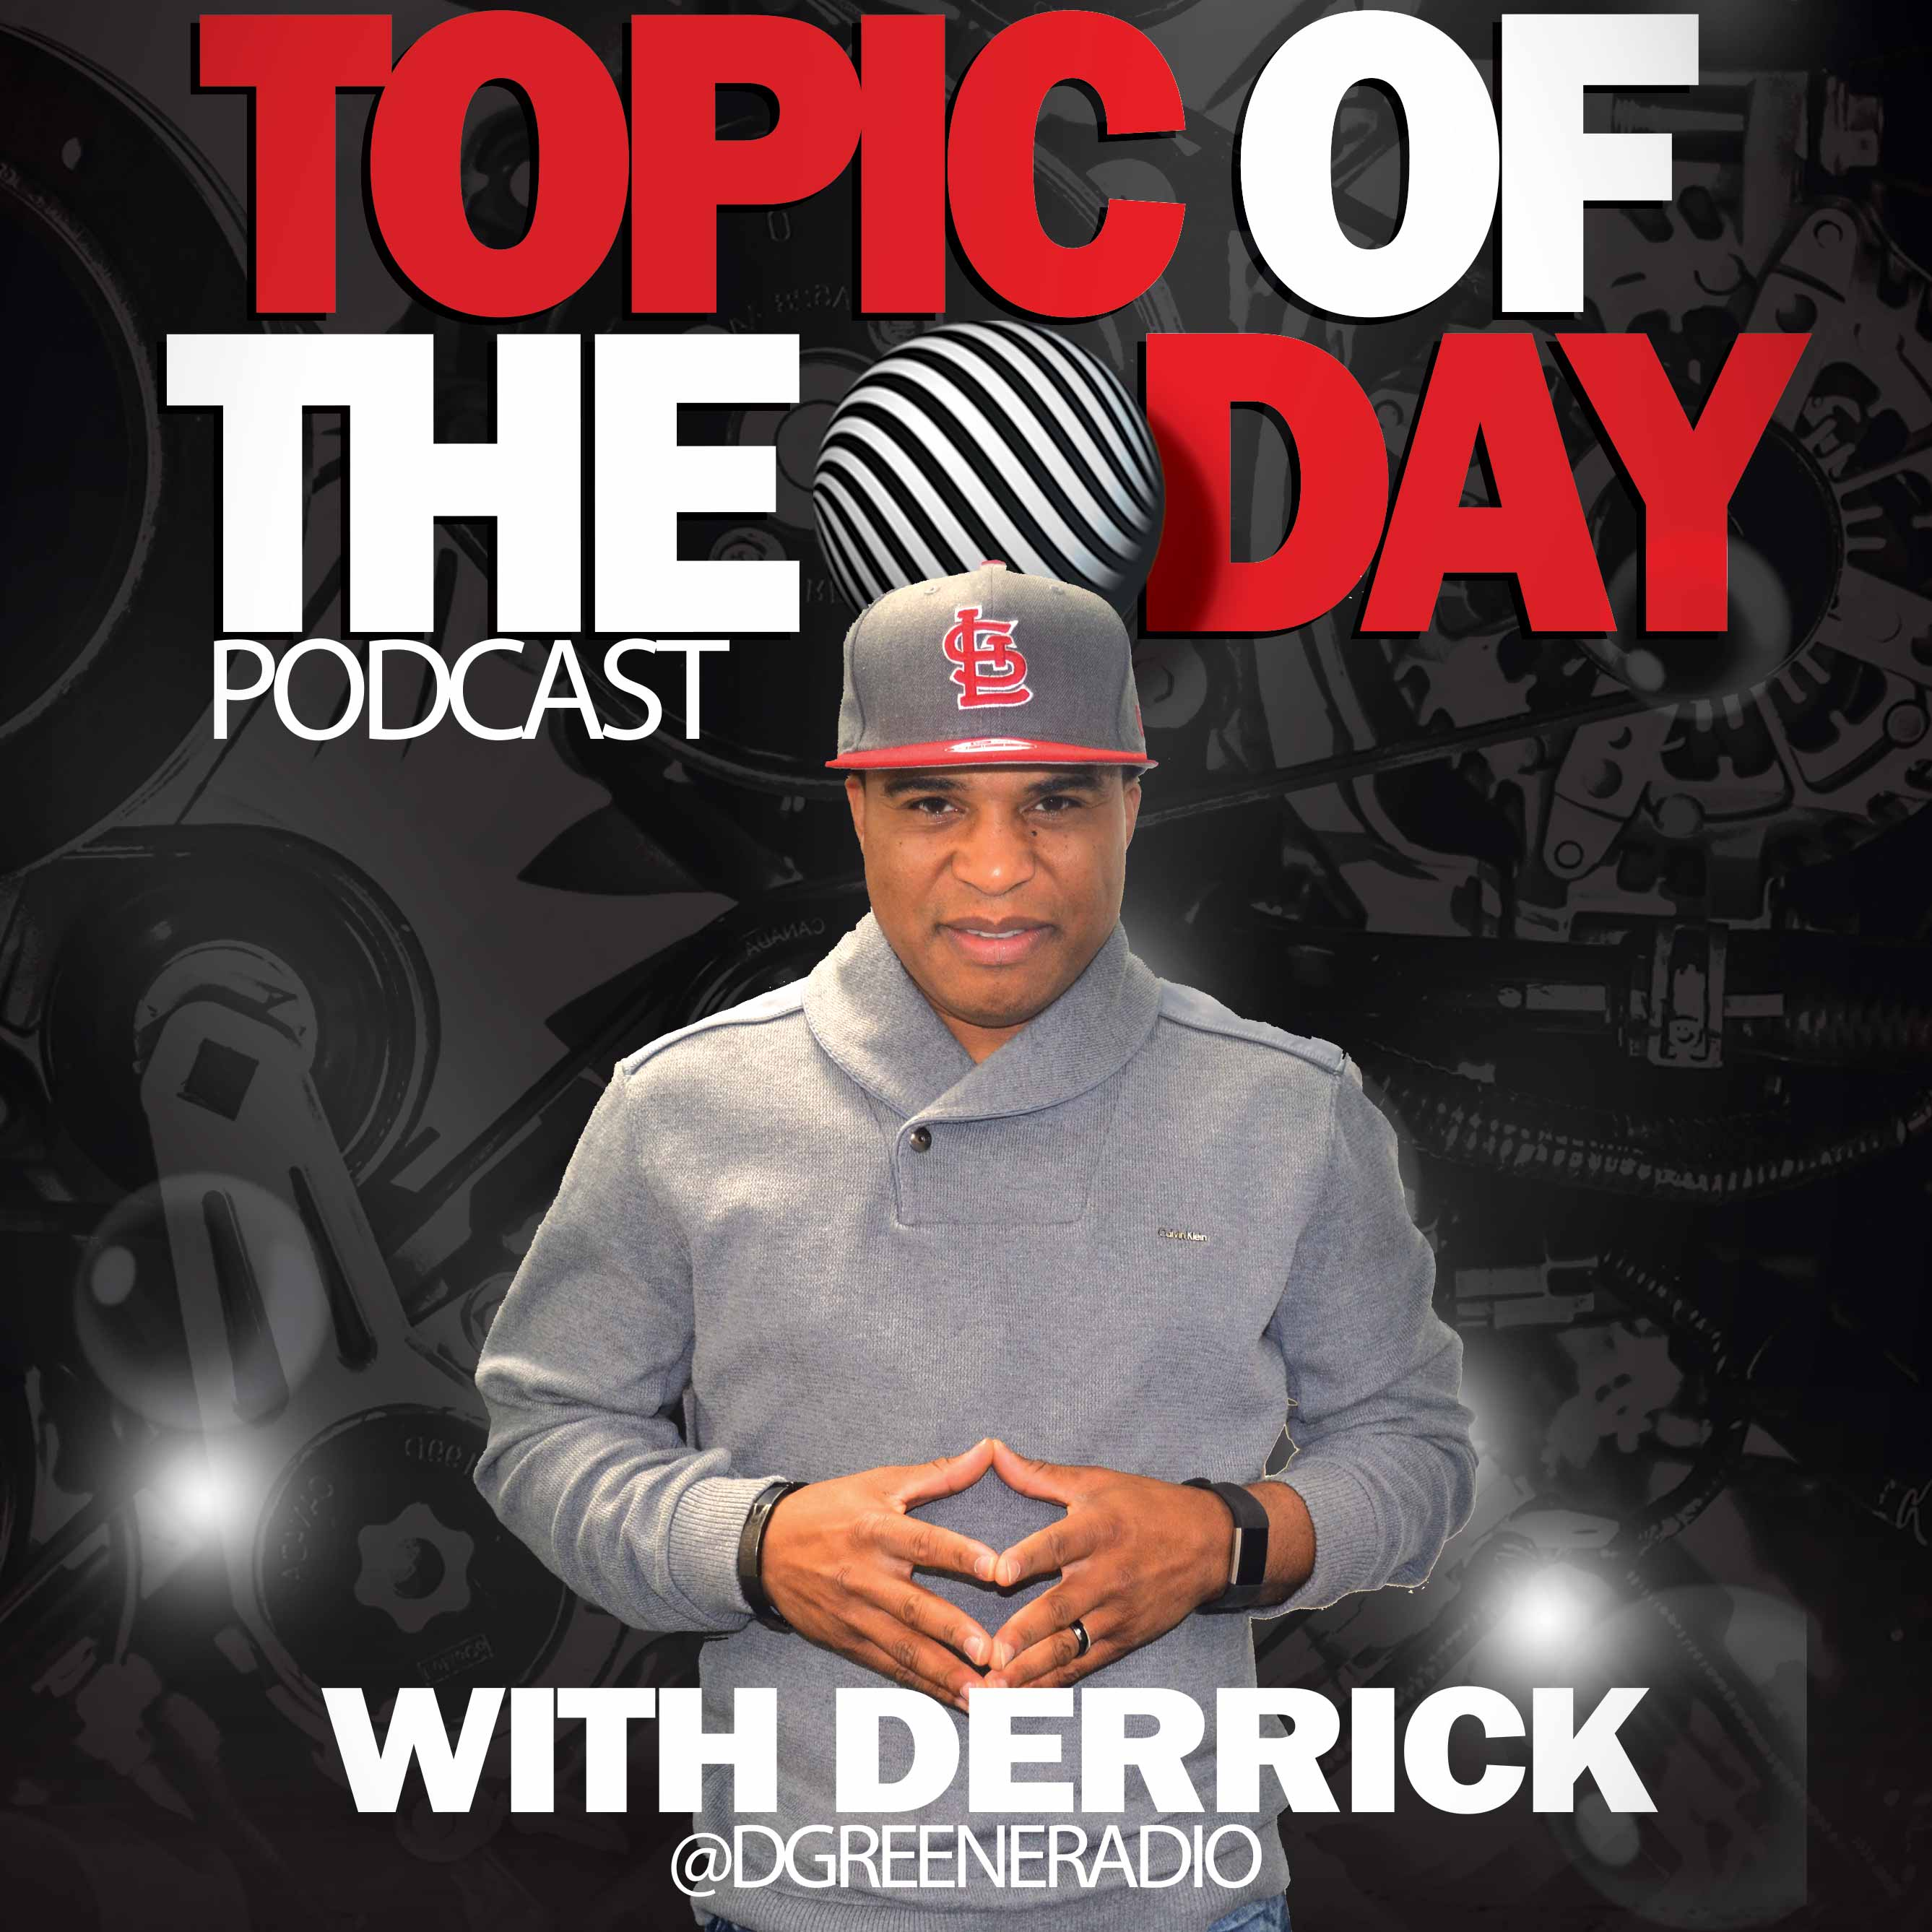 Topic of the Day with Derrick